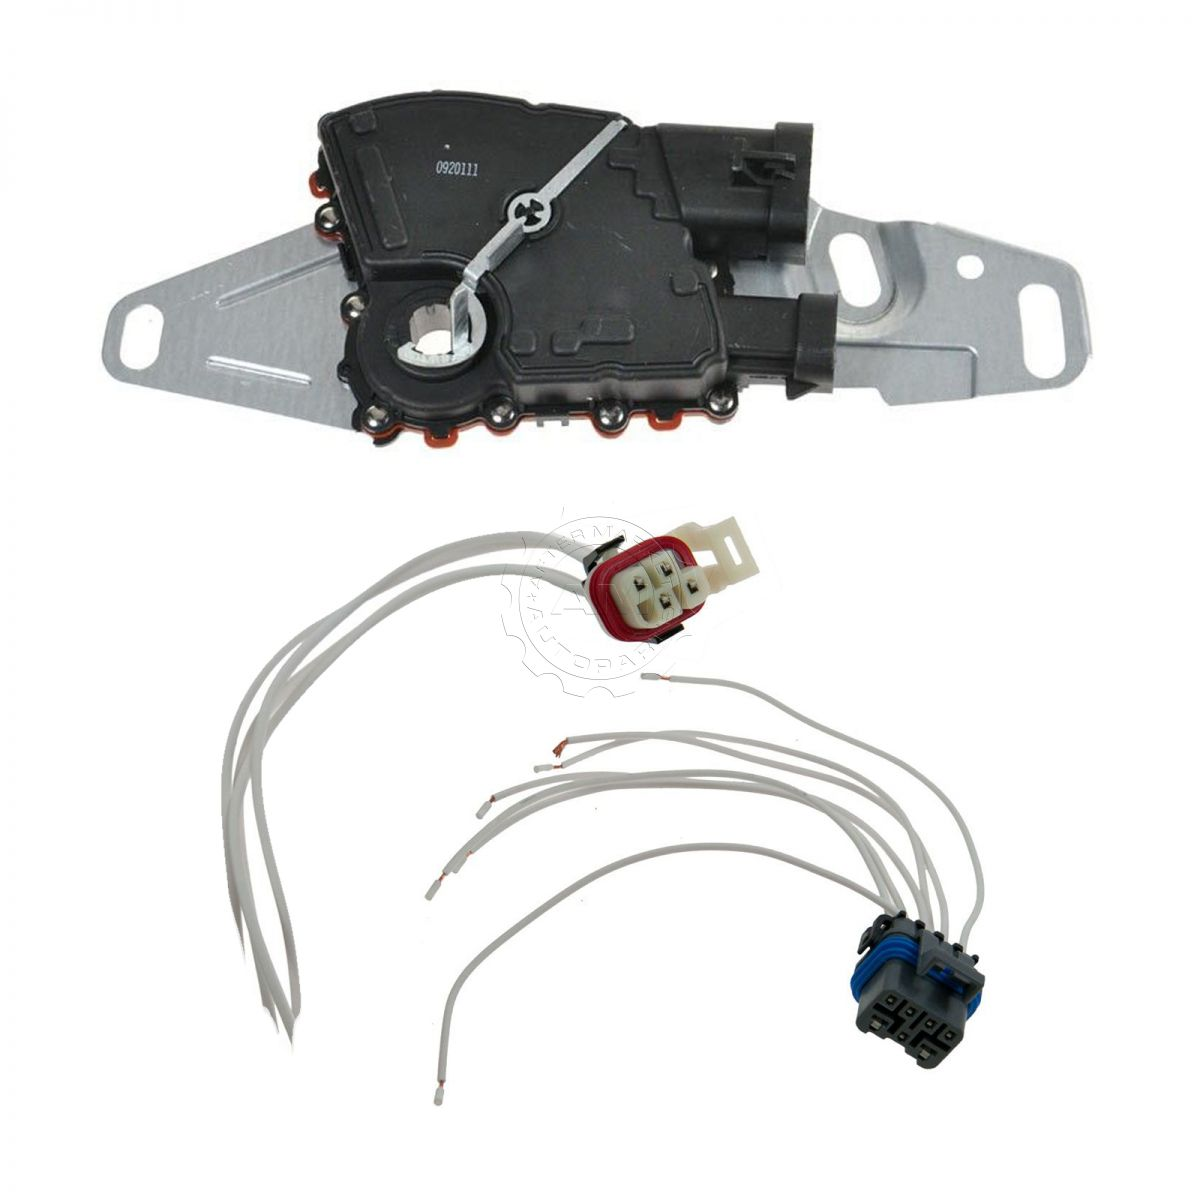 neutral safety switch and connector set for chevy gmc isuzu hummer